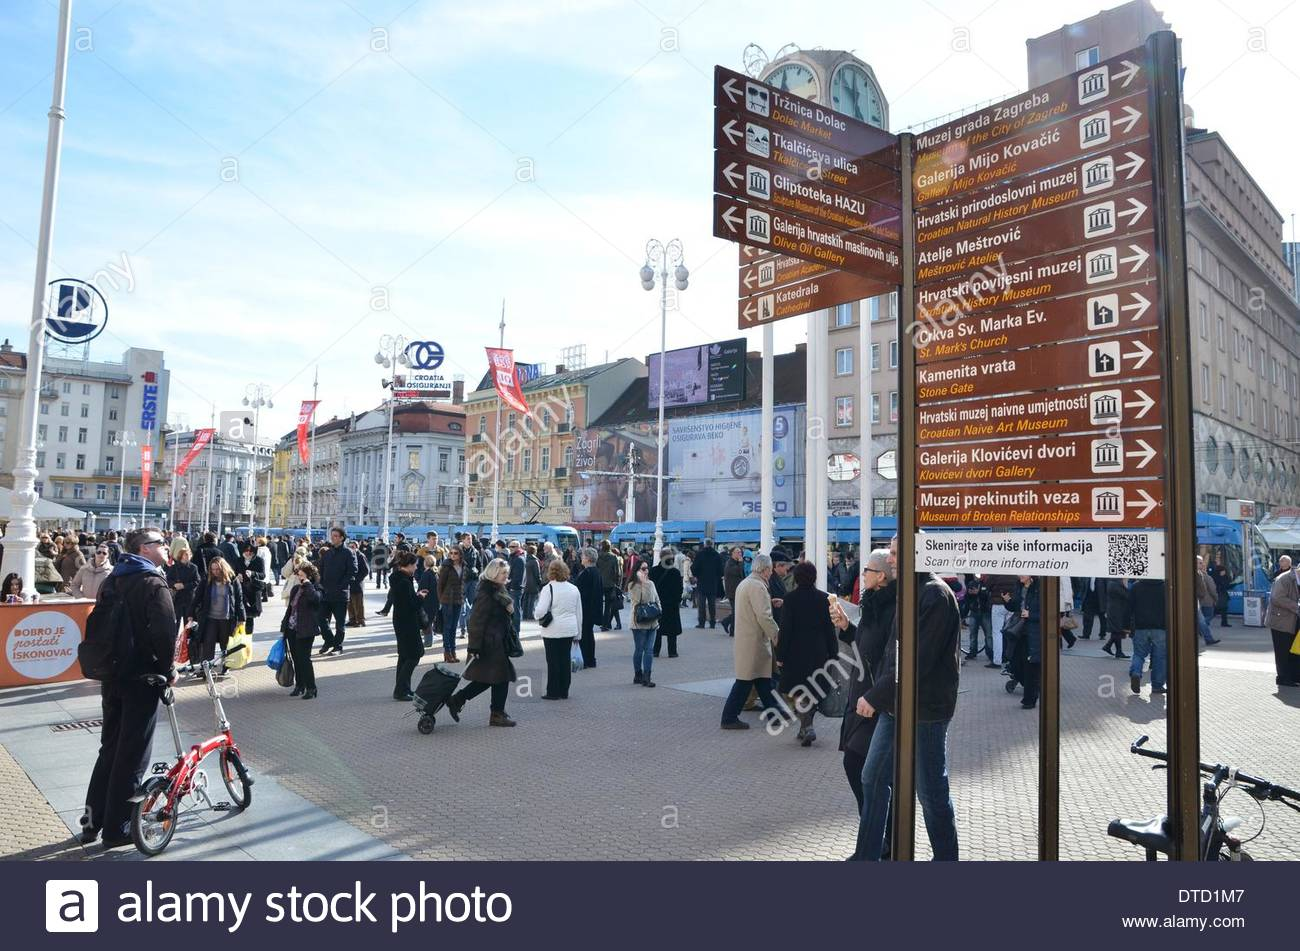 97d3b0af60f4 Warm weather has finally arrived. Zagreb residents are warm day use for  walking and shopping at the Dolac market. Citizens warmed pleasant 13  degrees.